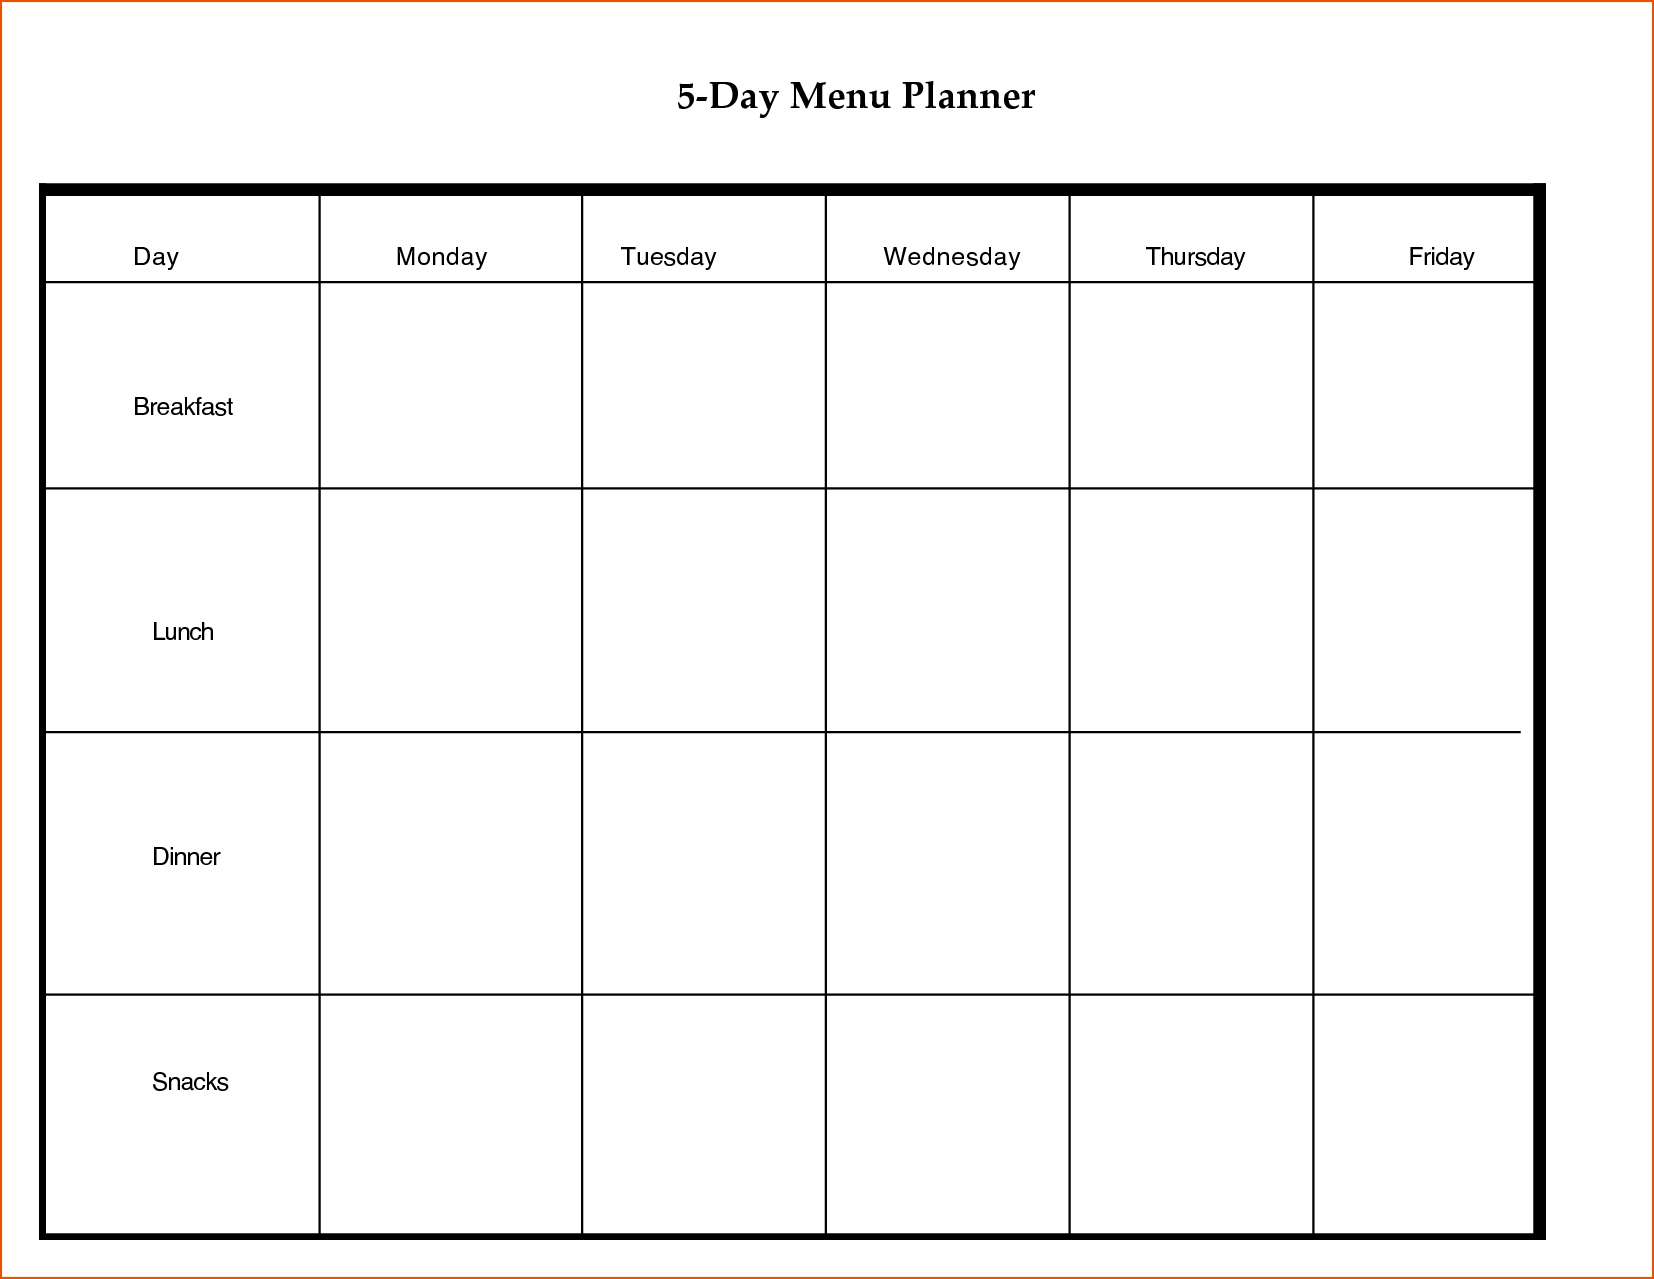 Blank Calendar With Imes Day Week Holidays Emplate Schedule Ime in 5 Day Week Blank Calendar With Time Slots Printable